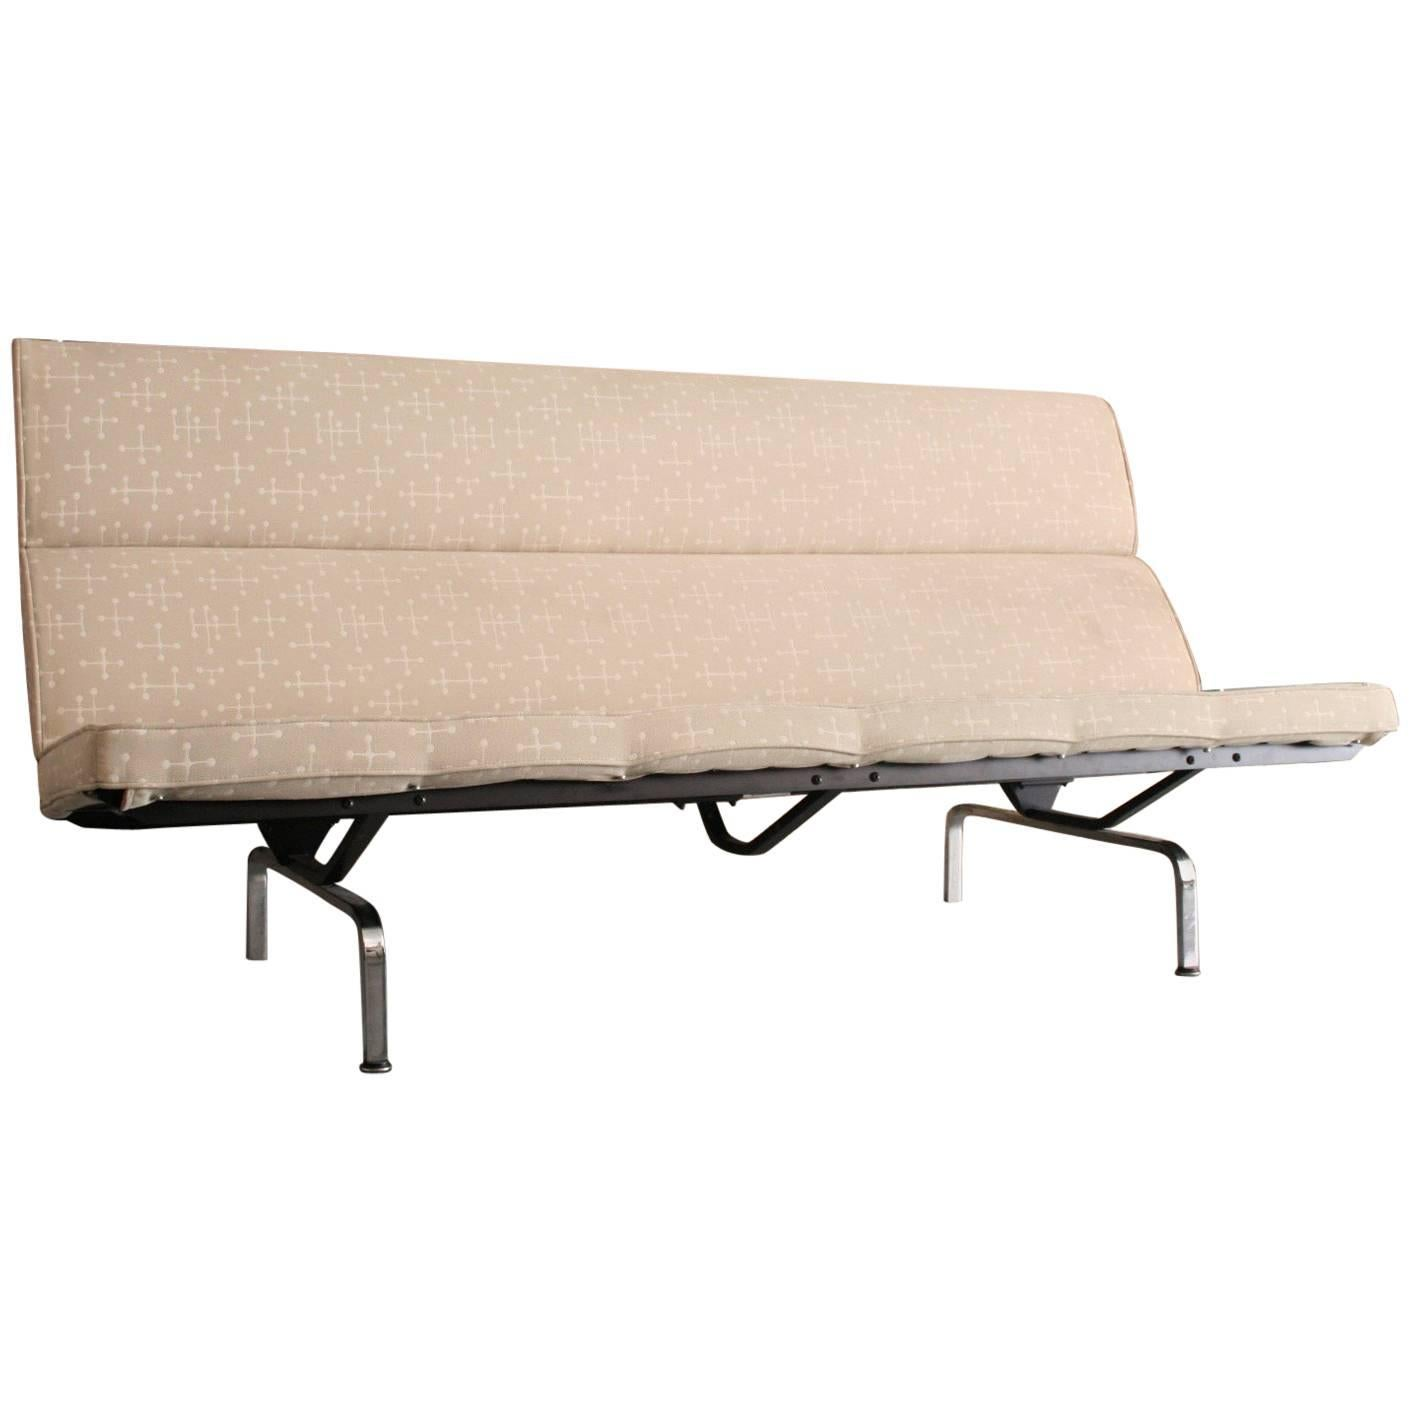 Eames Sofa Compact In Eames Fabric For Sale